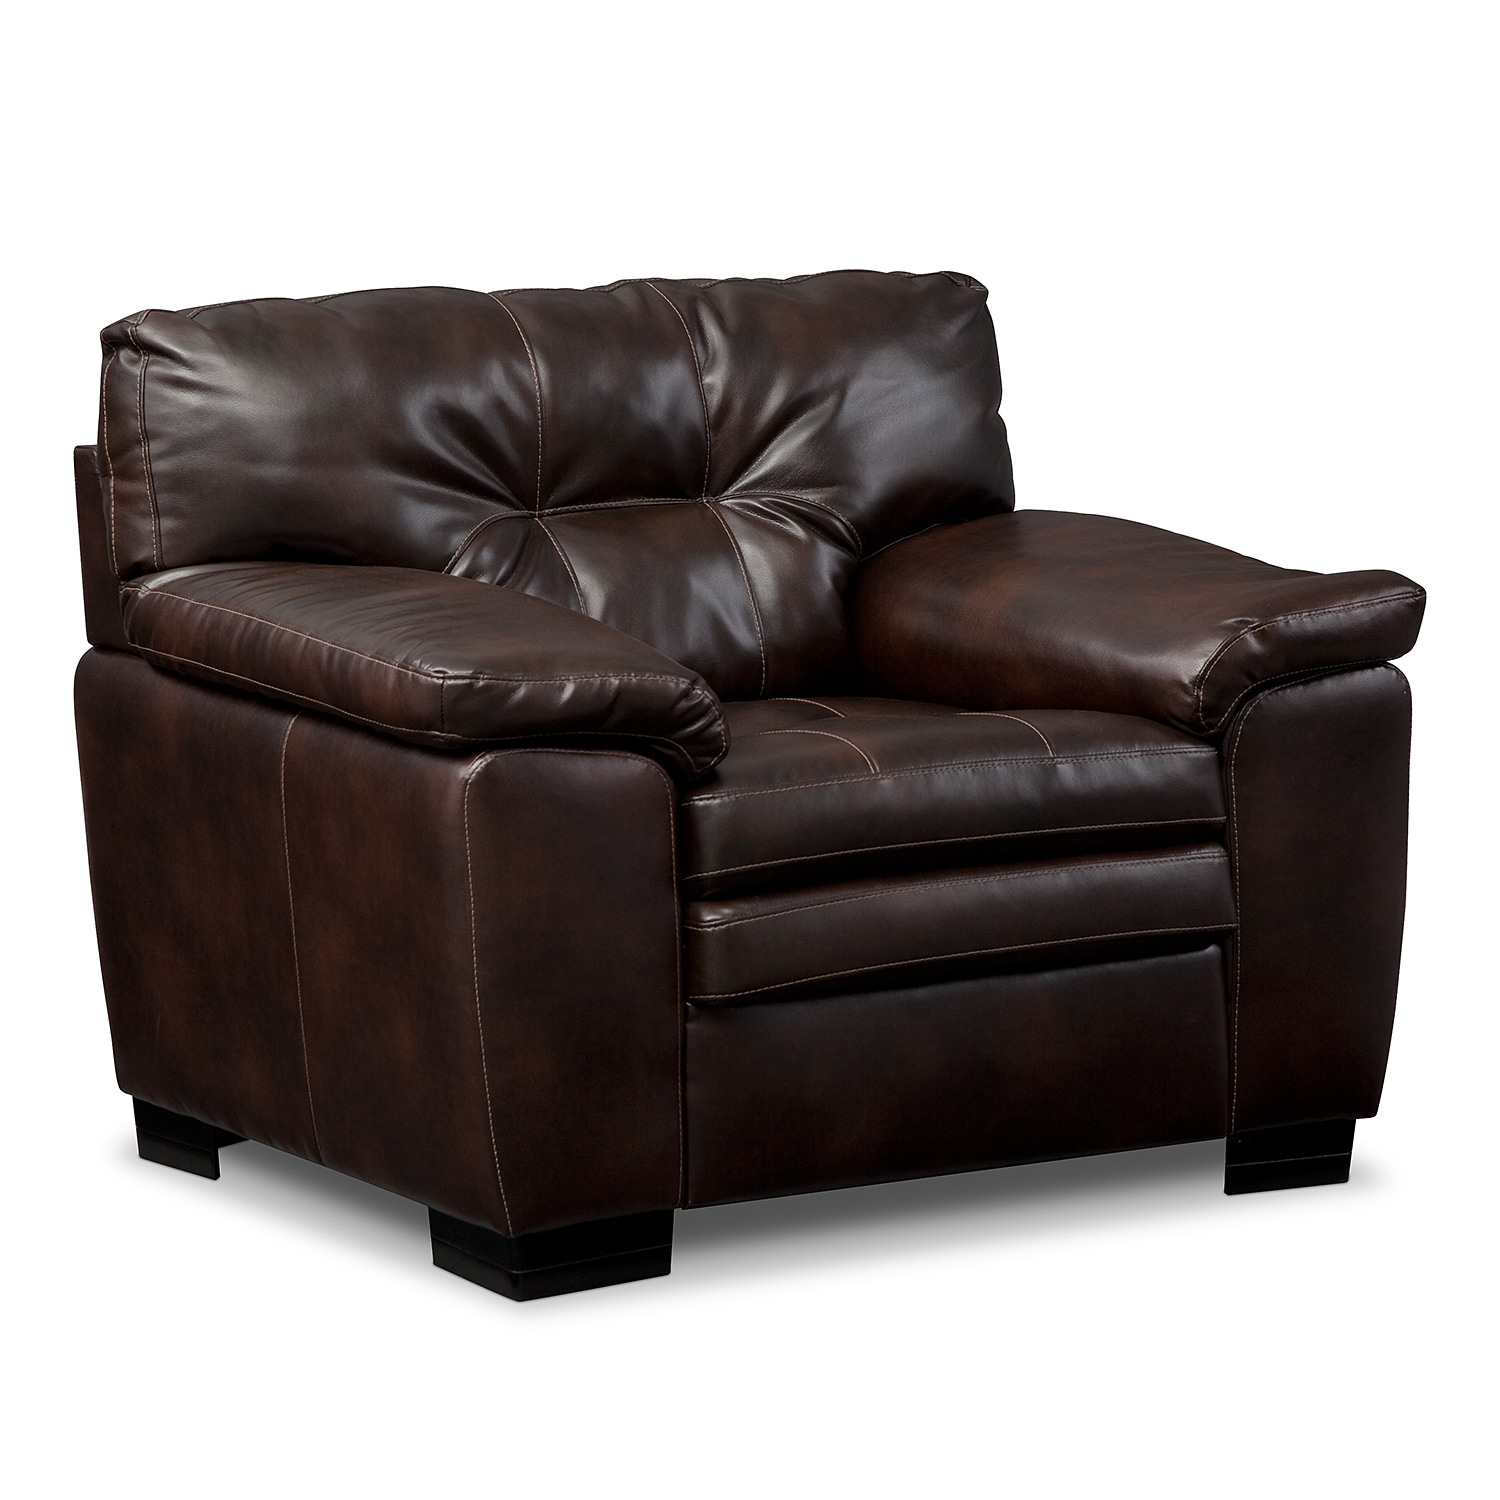 Living Room Furniture - Revere Brown Chair